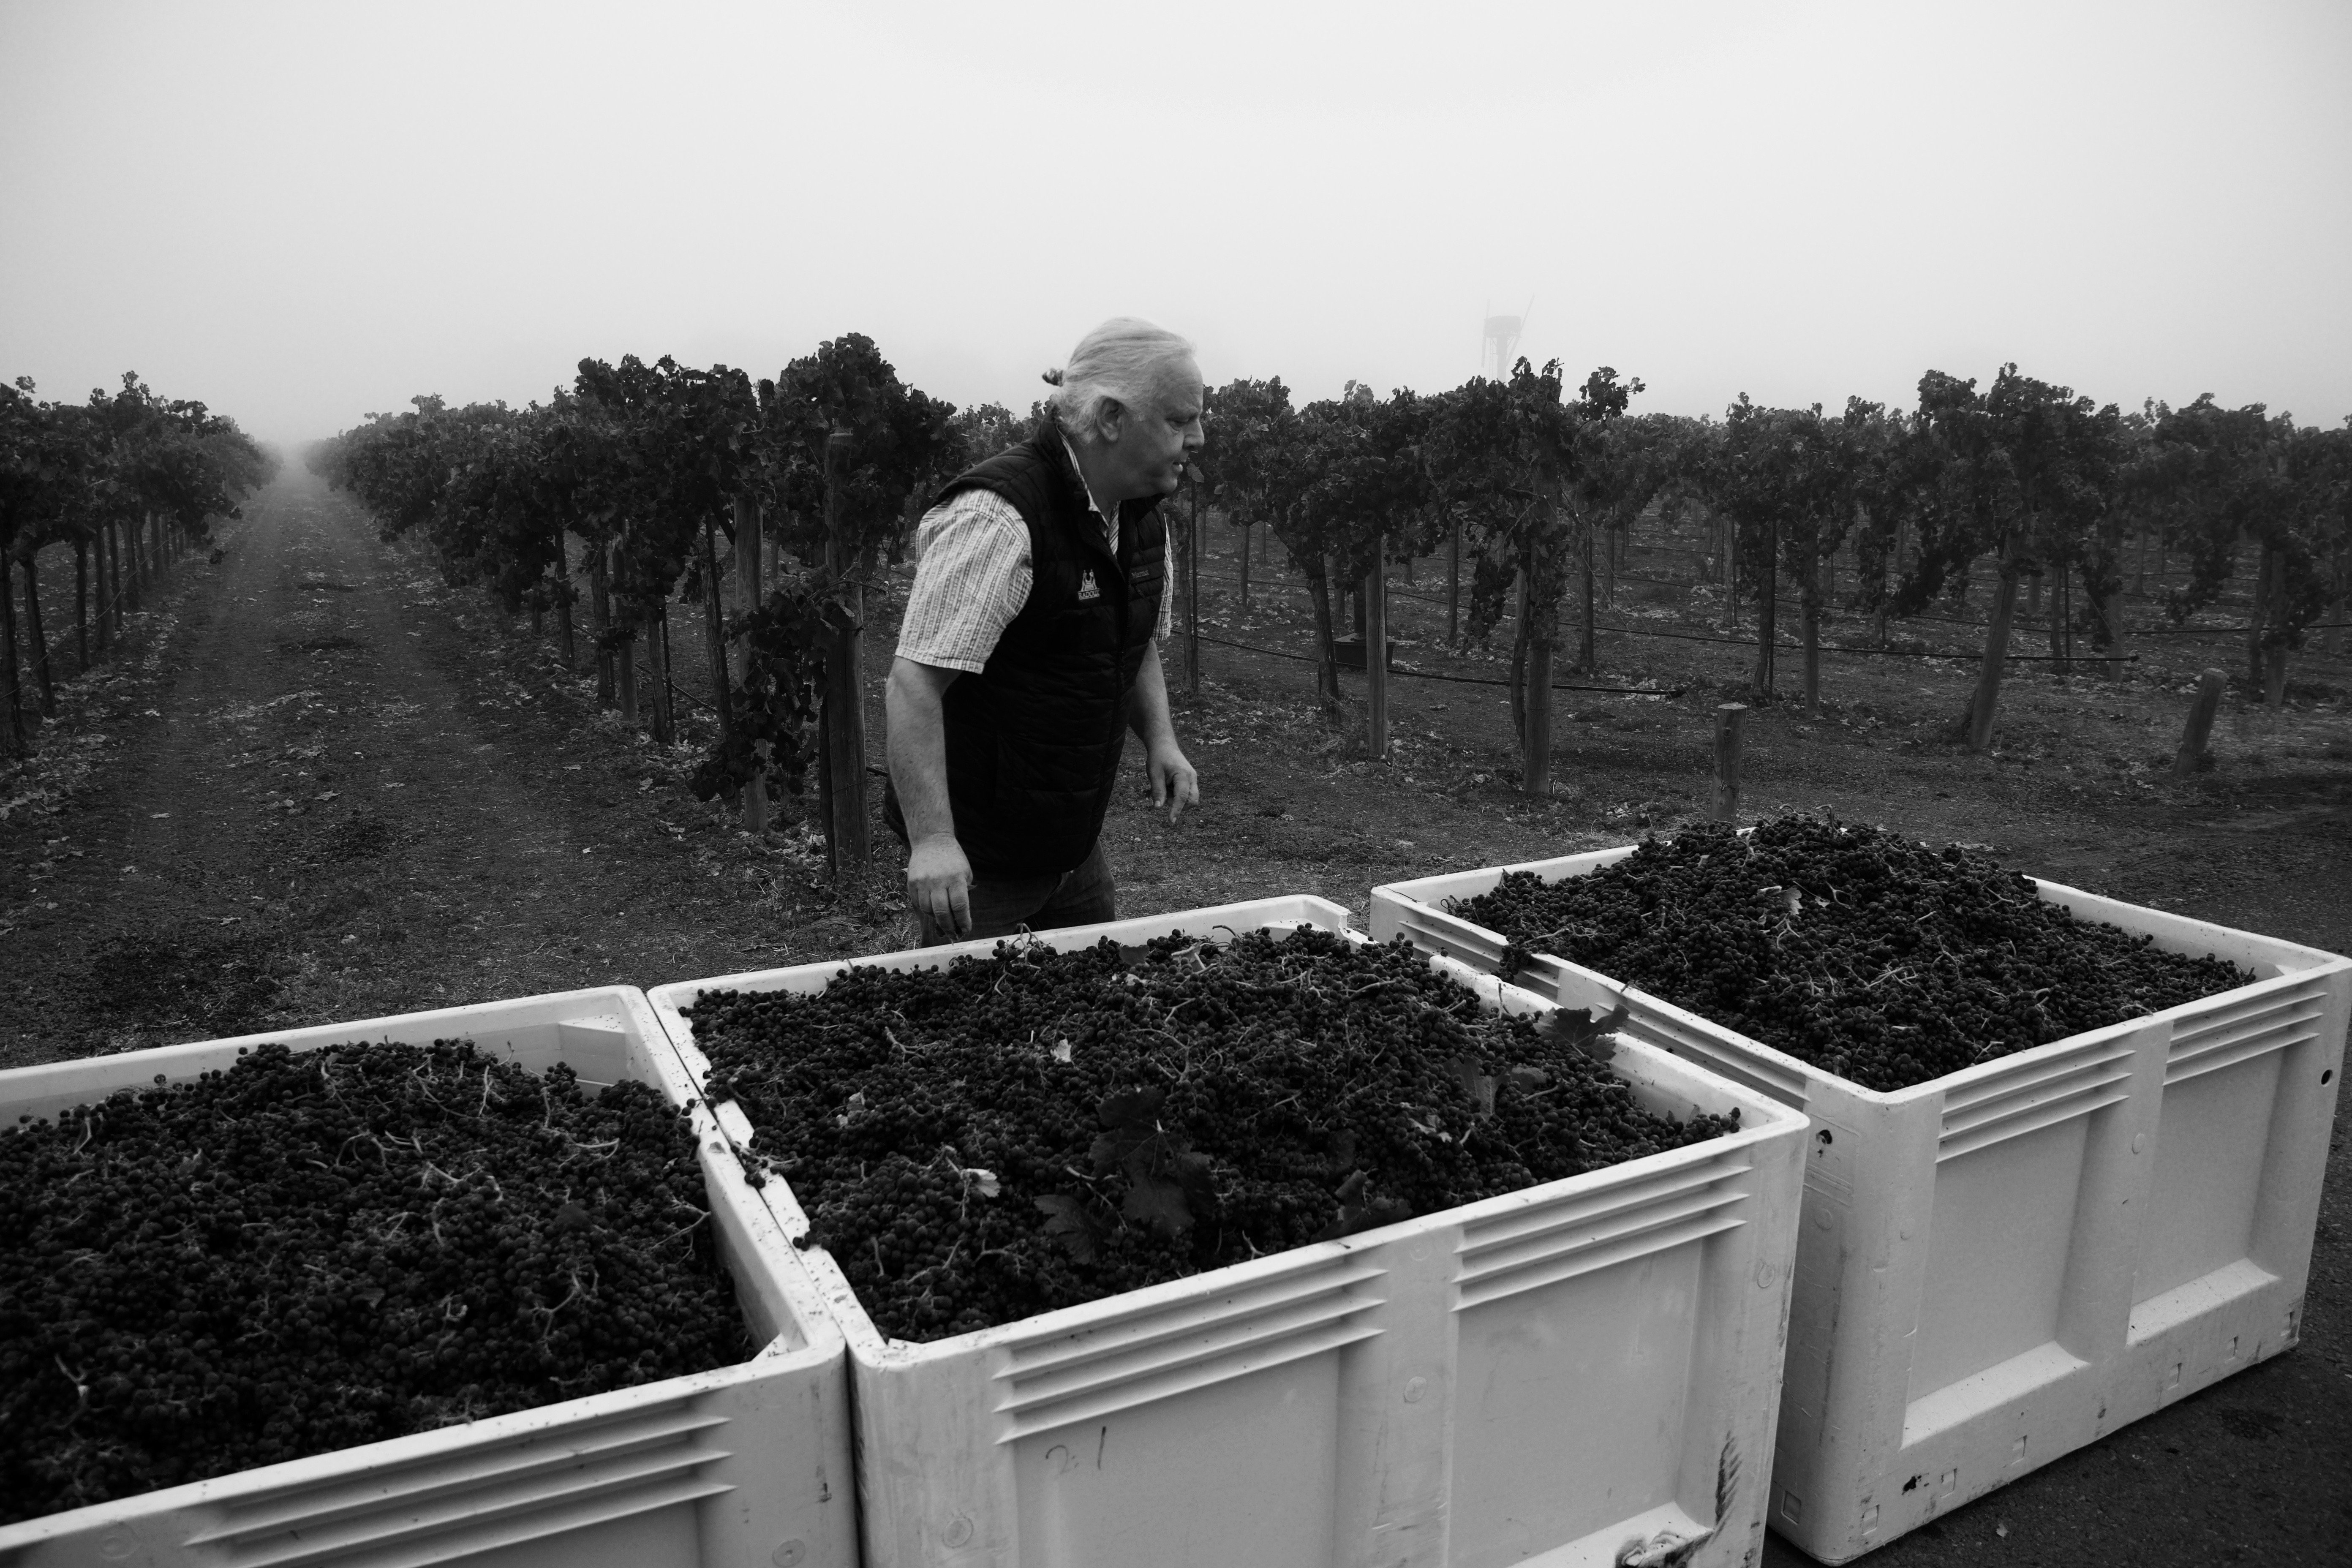 Mark Inspecting the Grapes